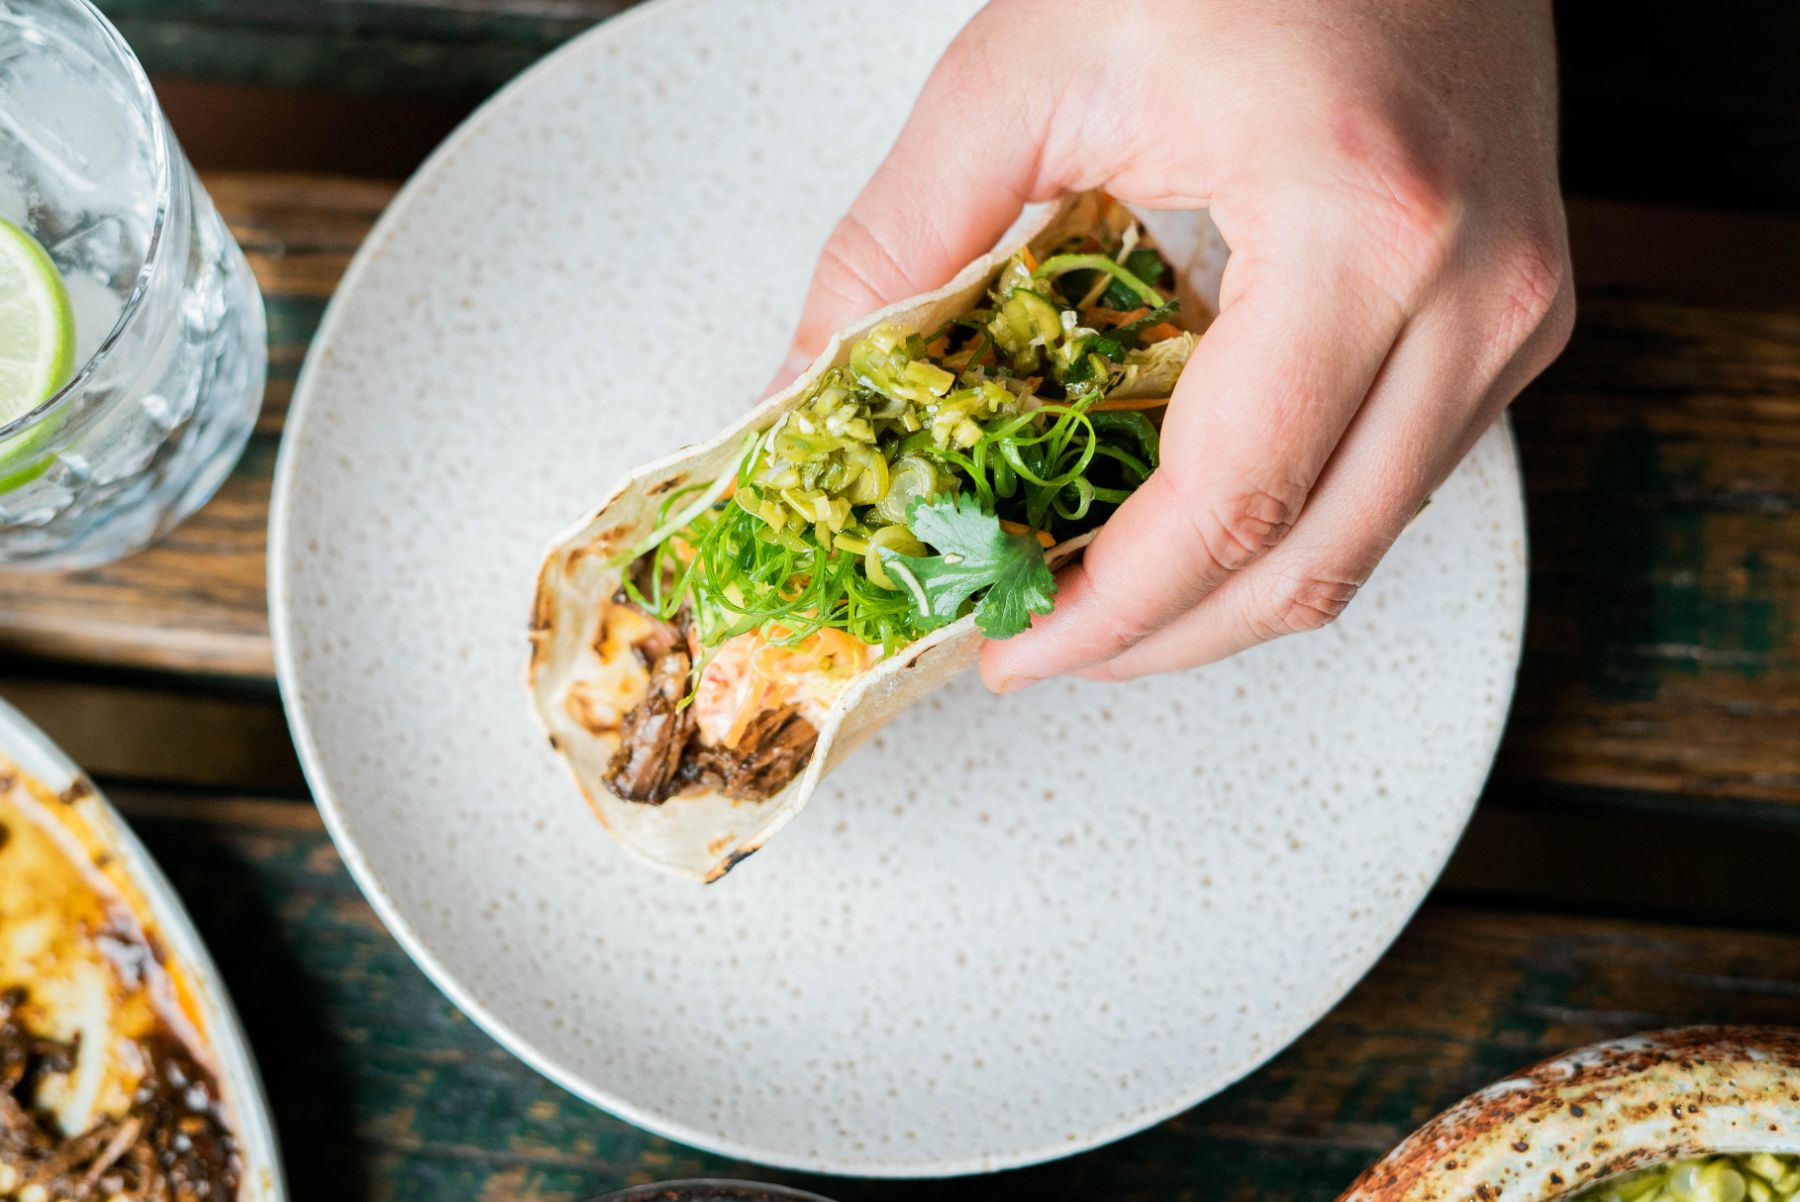 Taco Night Done Right - Up Your Taco Game for Dad this Father's Day with Matt Sinclair's Smoky Brisket